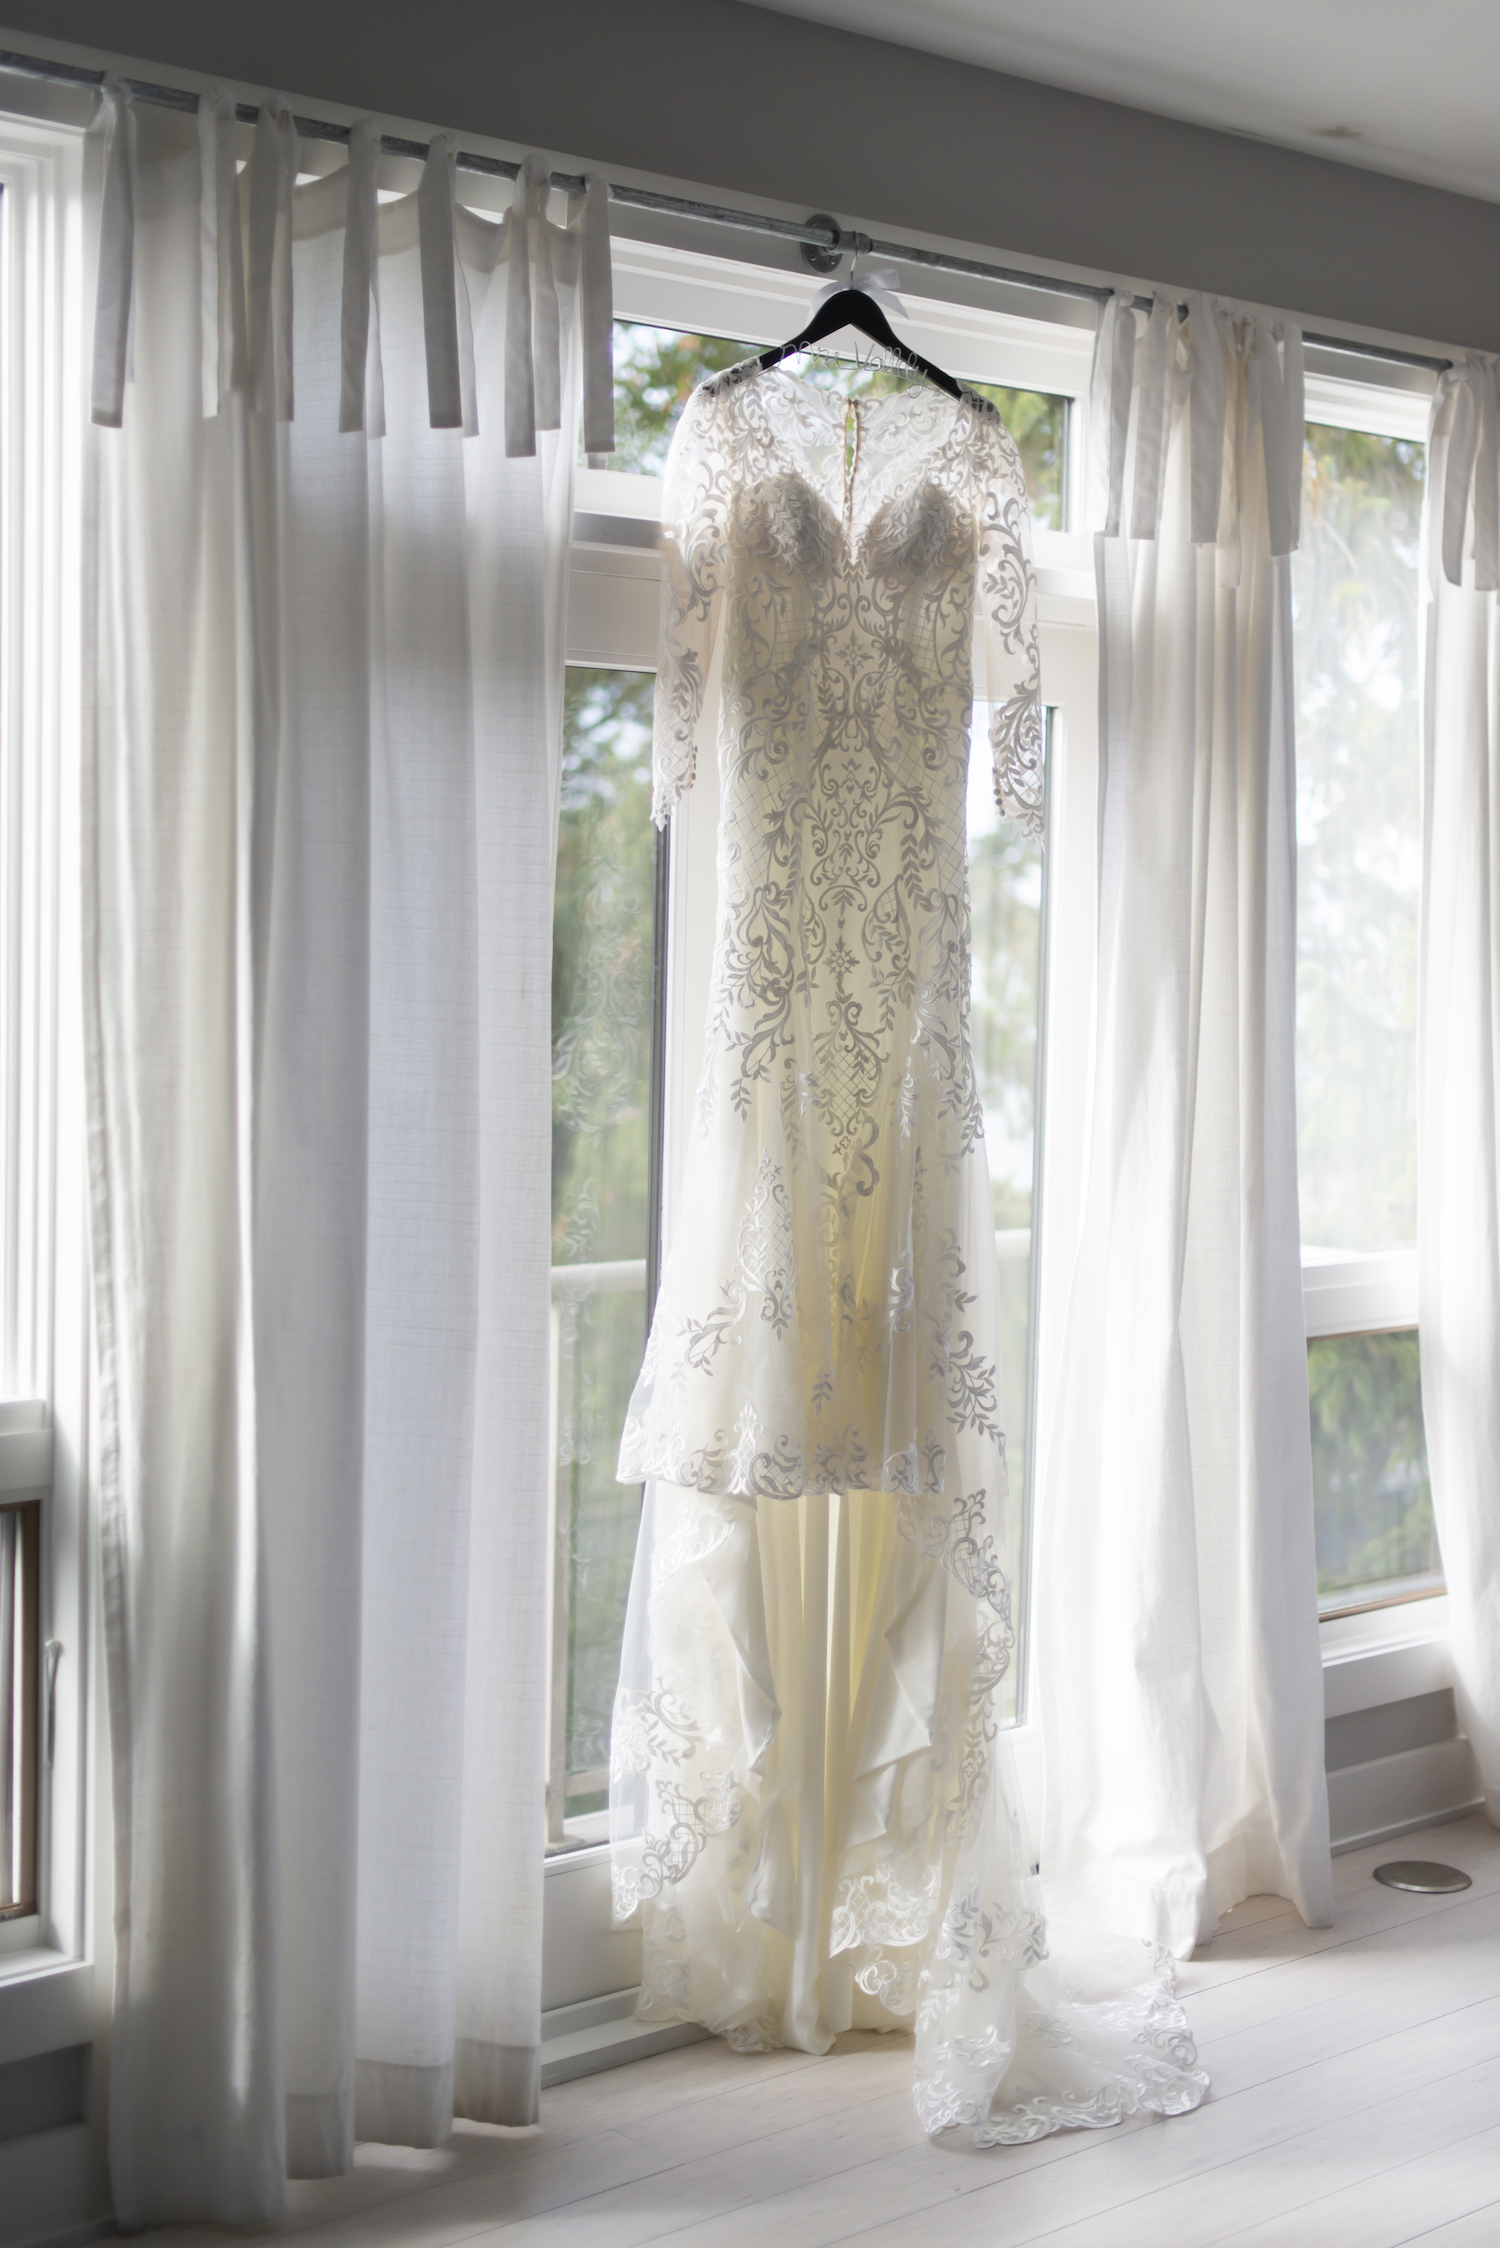 Bridal gown hanging before rustic Michigan wedding